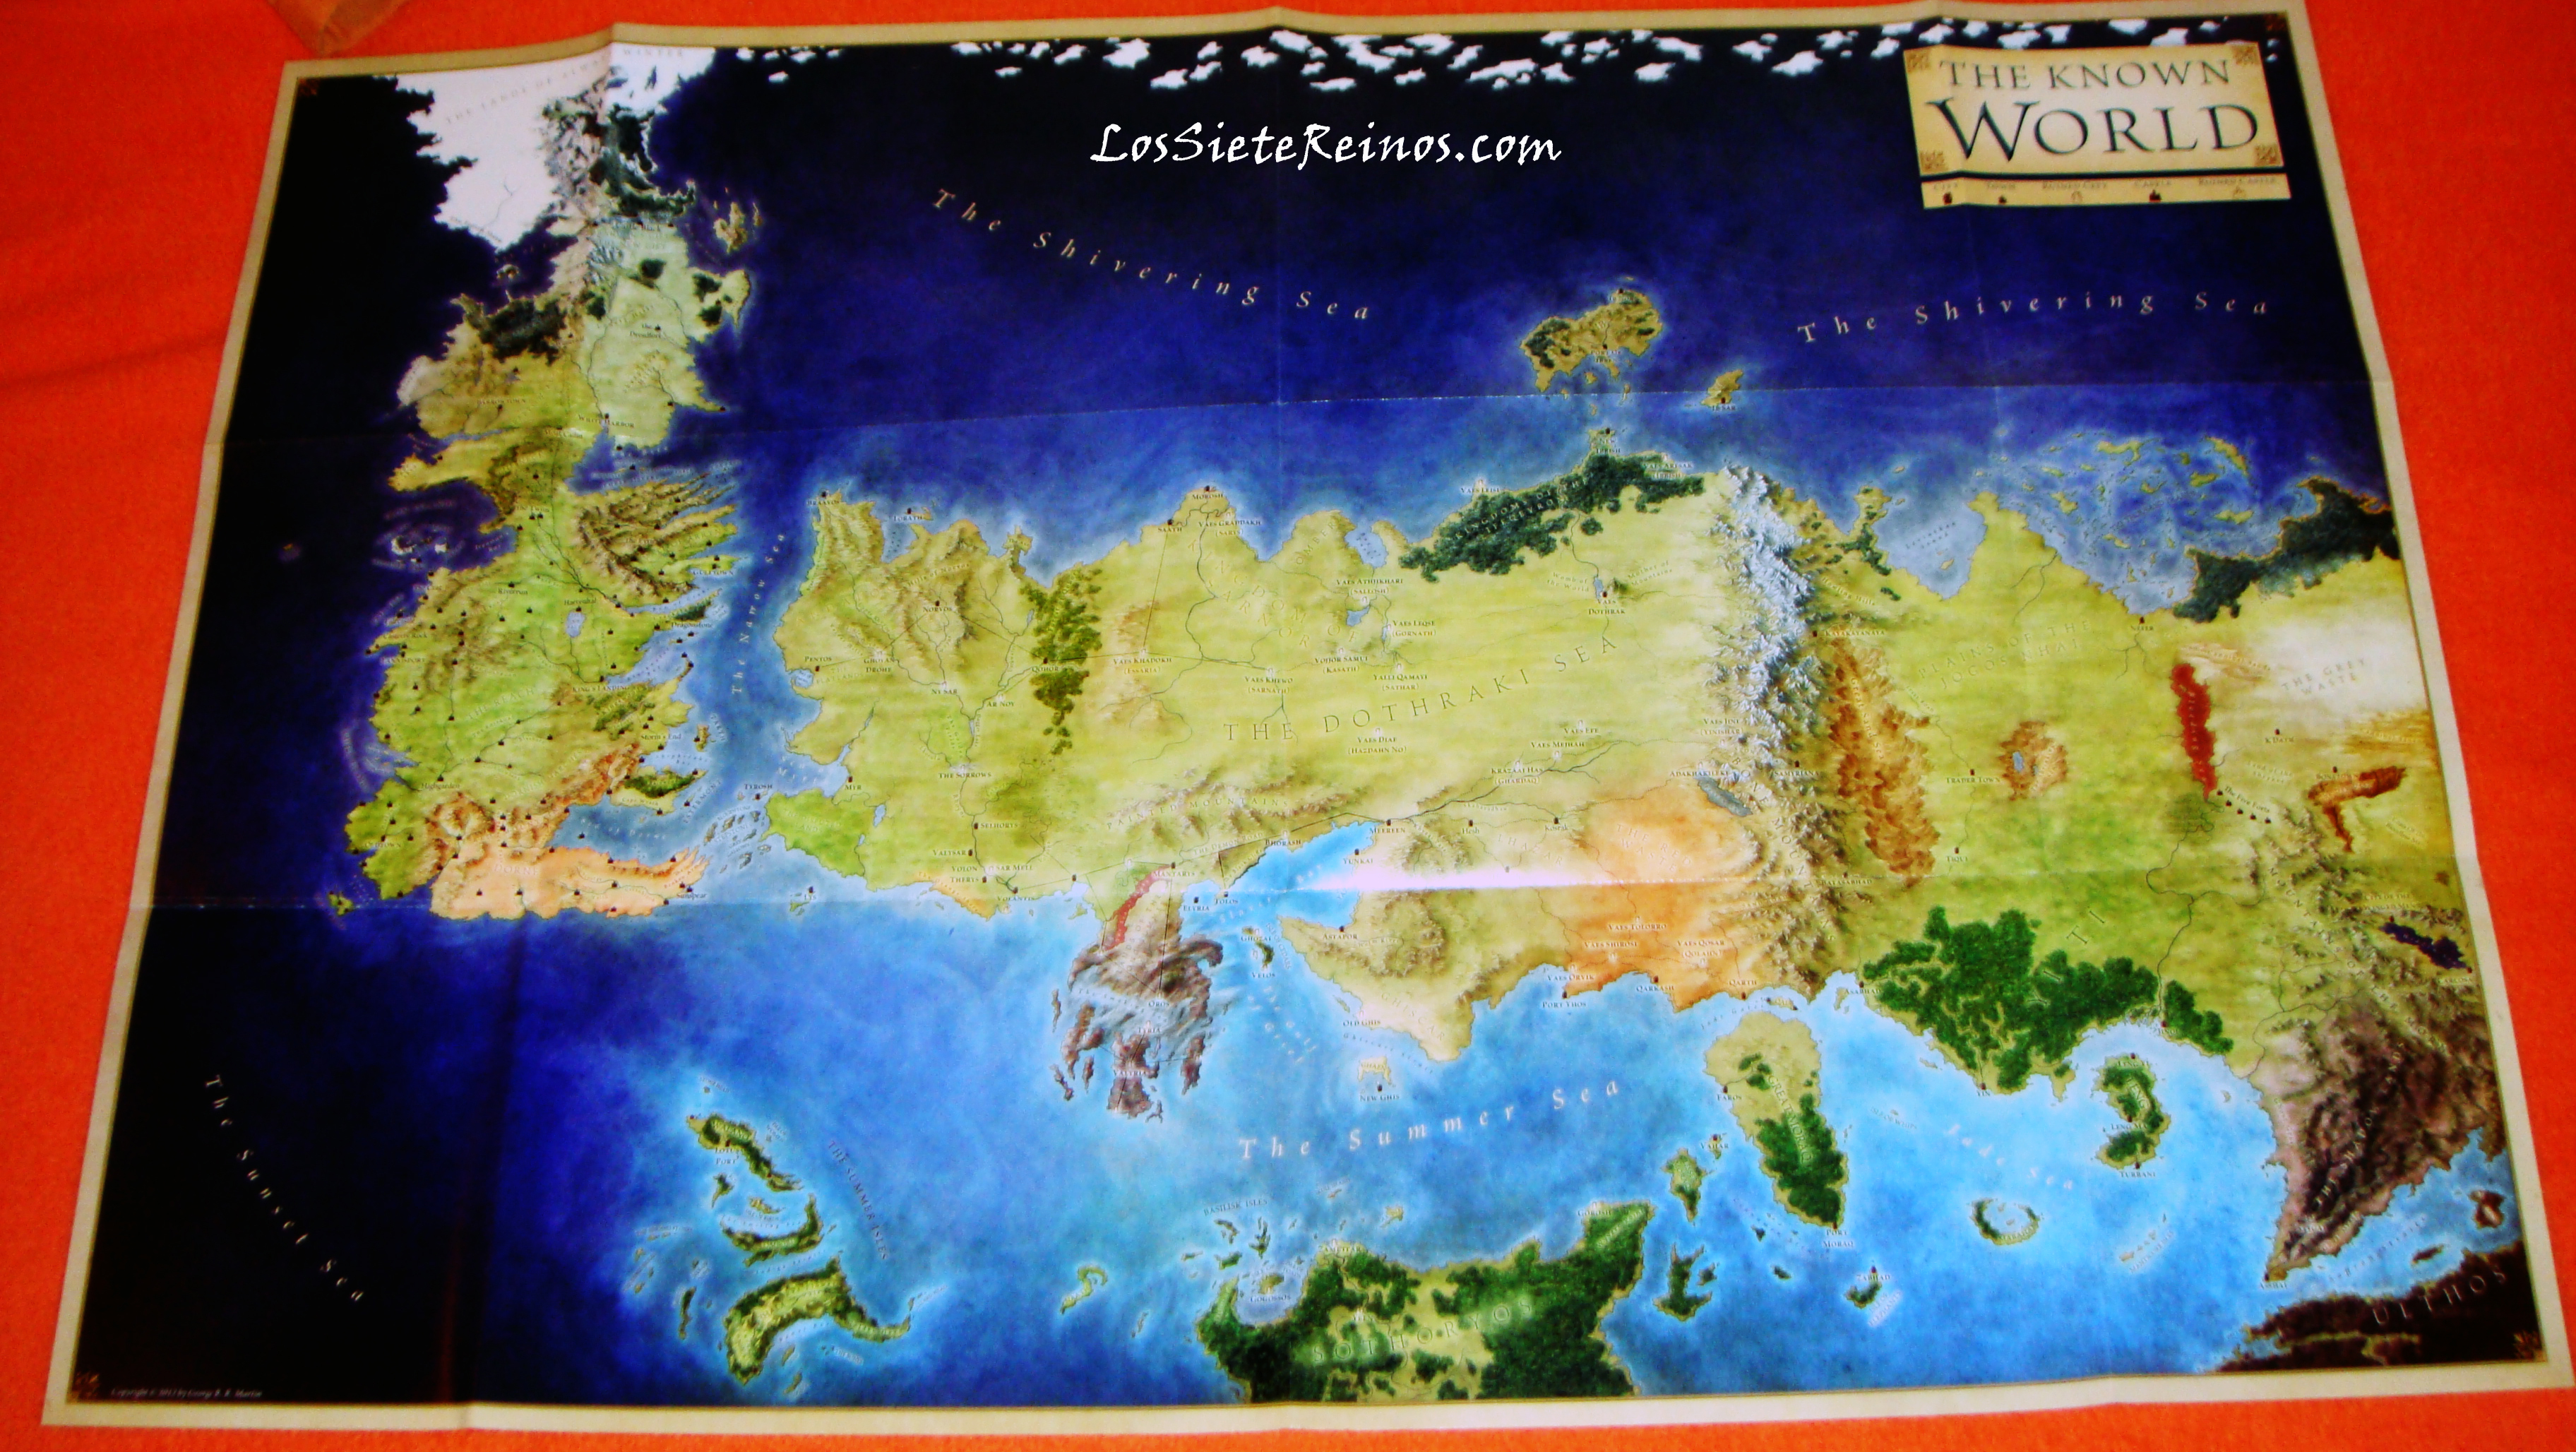 A Song of Ice and Fire - World Size *SPOILERS* - Books and ...